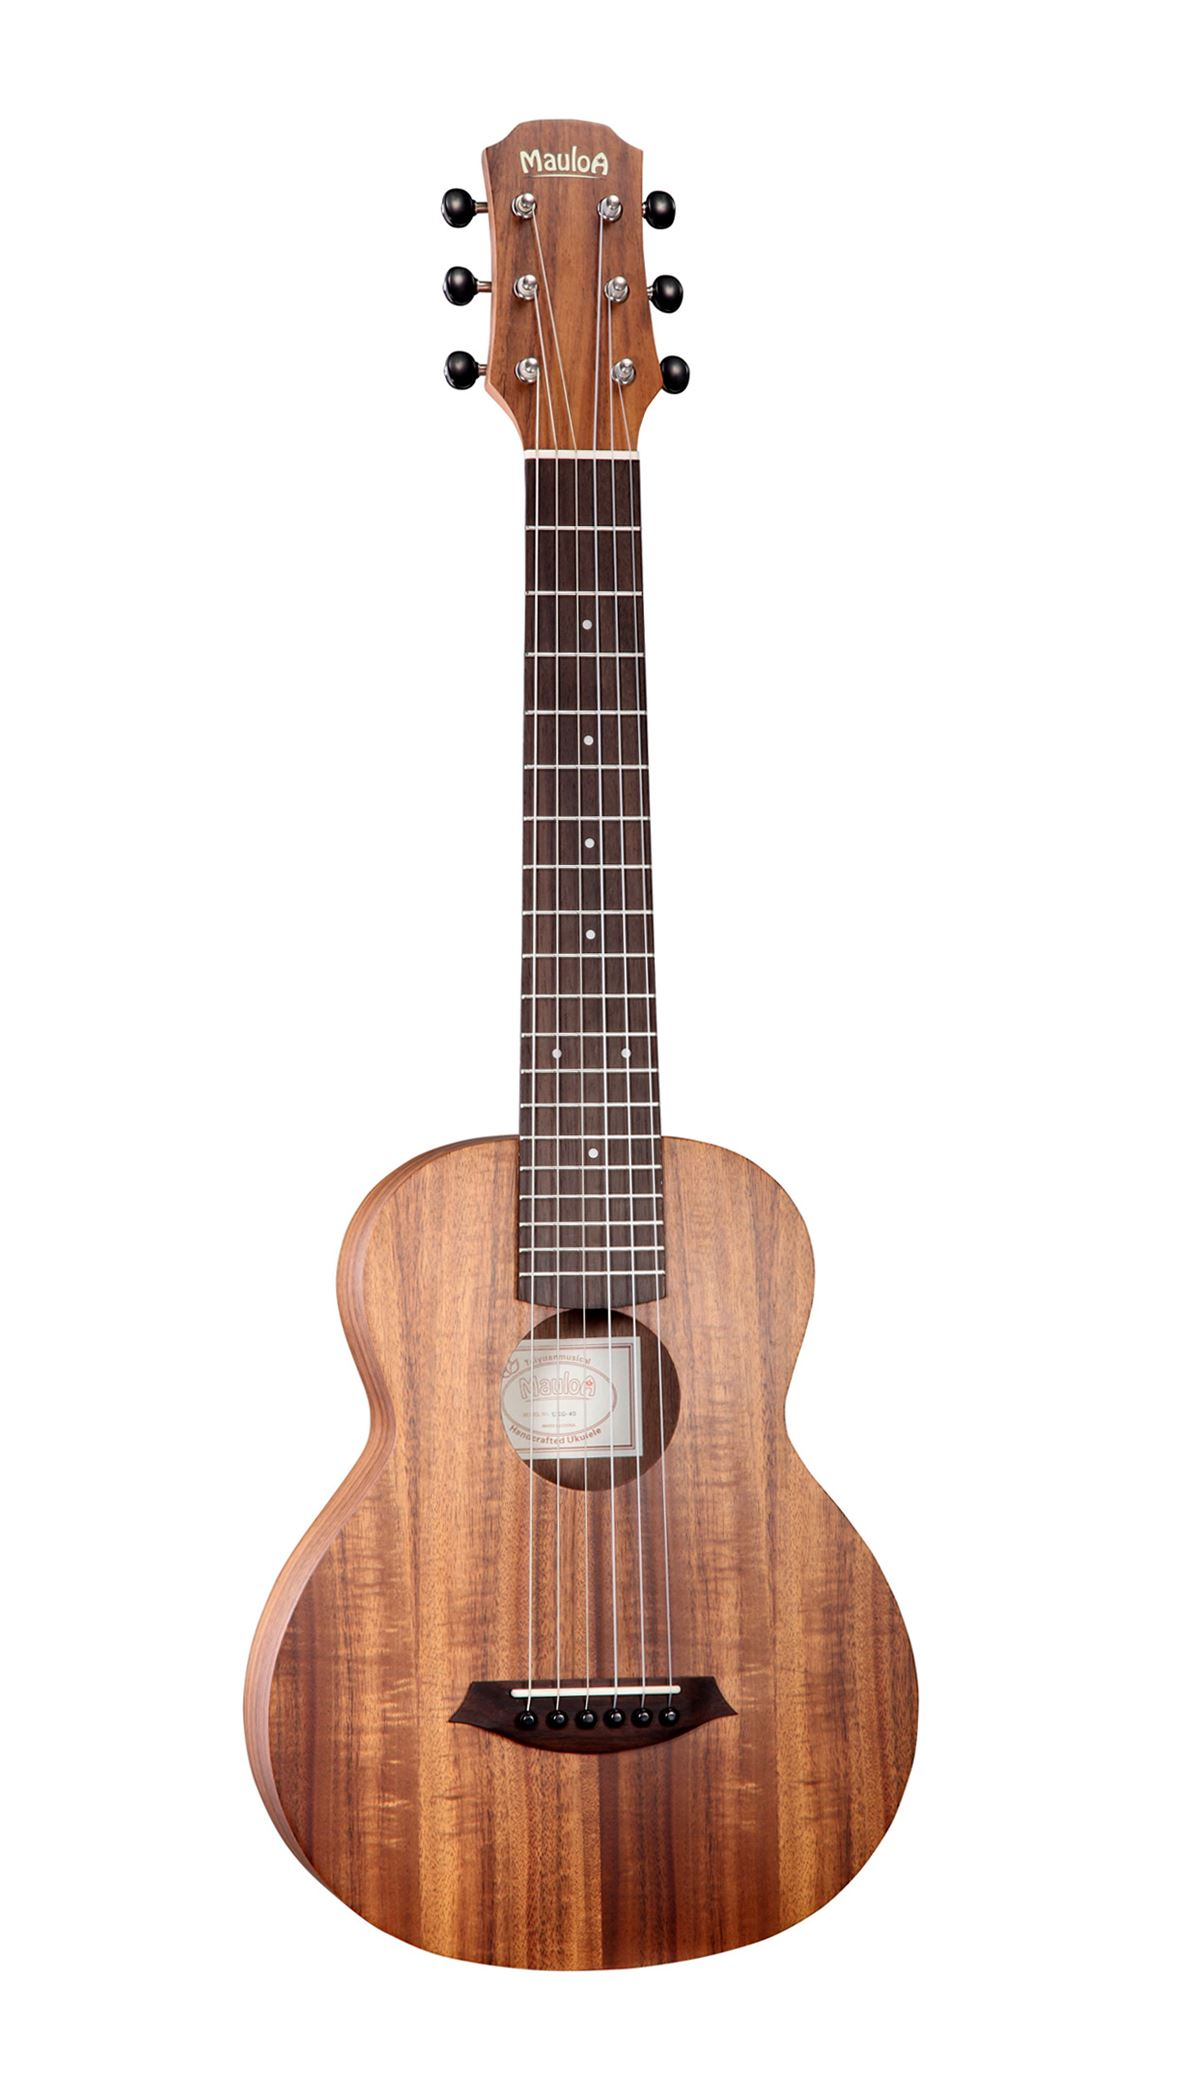 Koa Plywood,Guitarlele